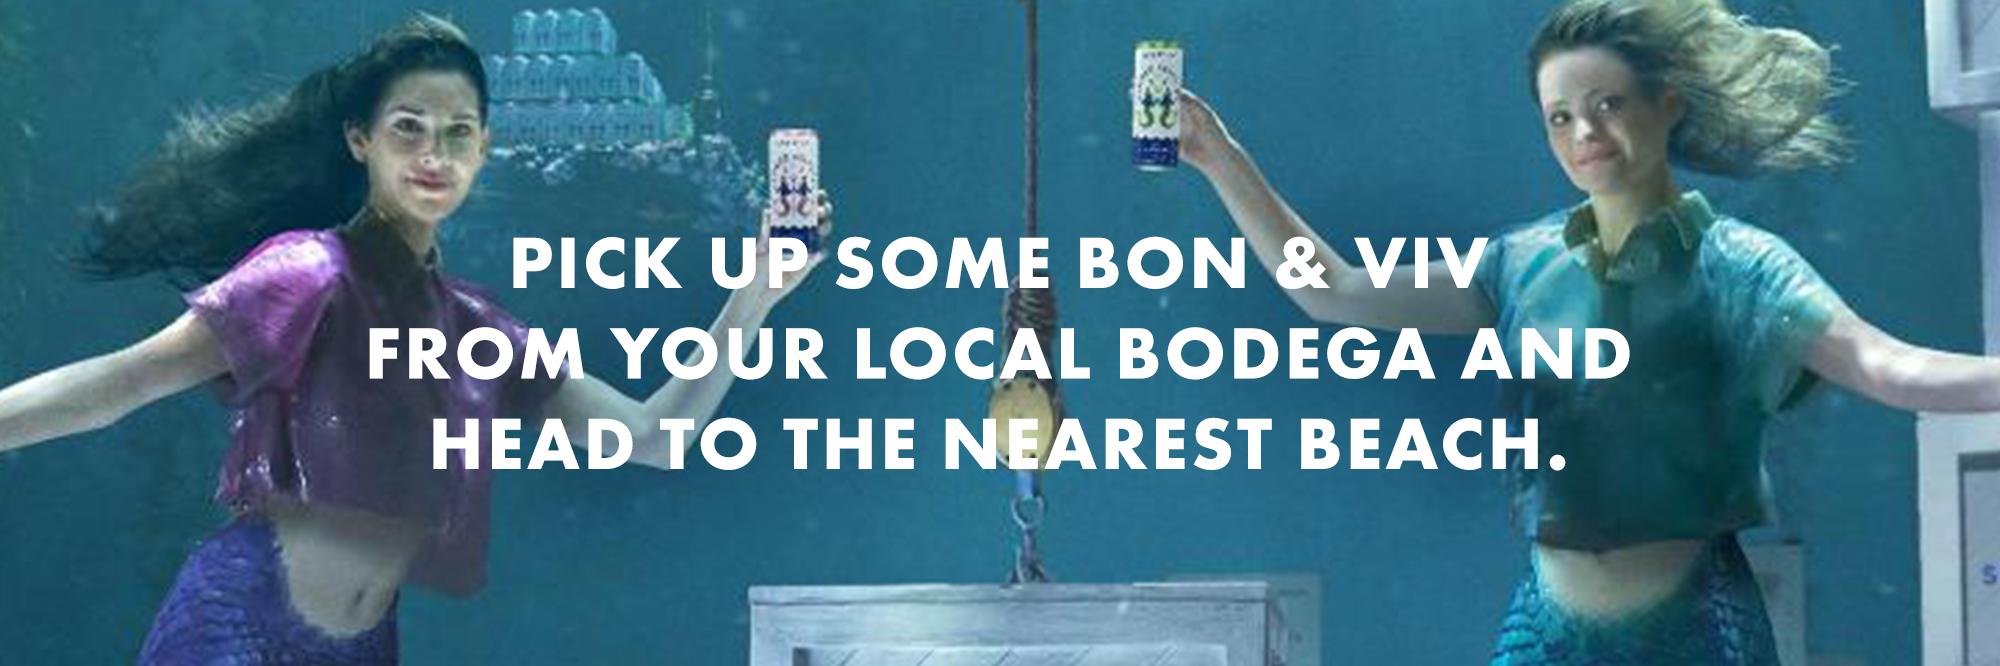 Pick up some Bon & Viv from your local bodega and head to the nearest beach.